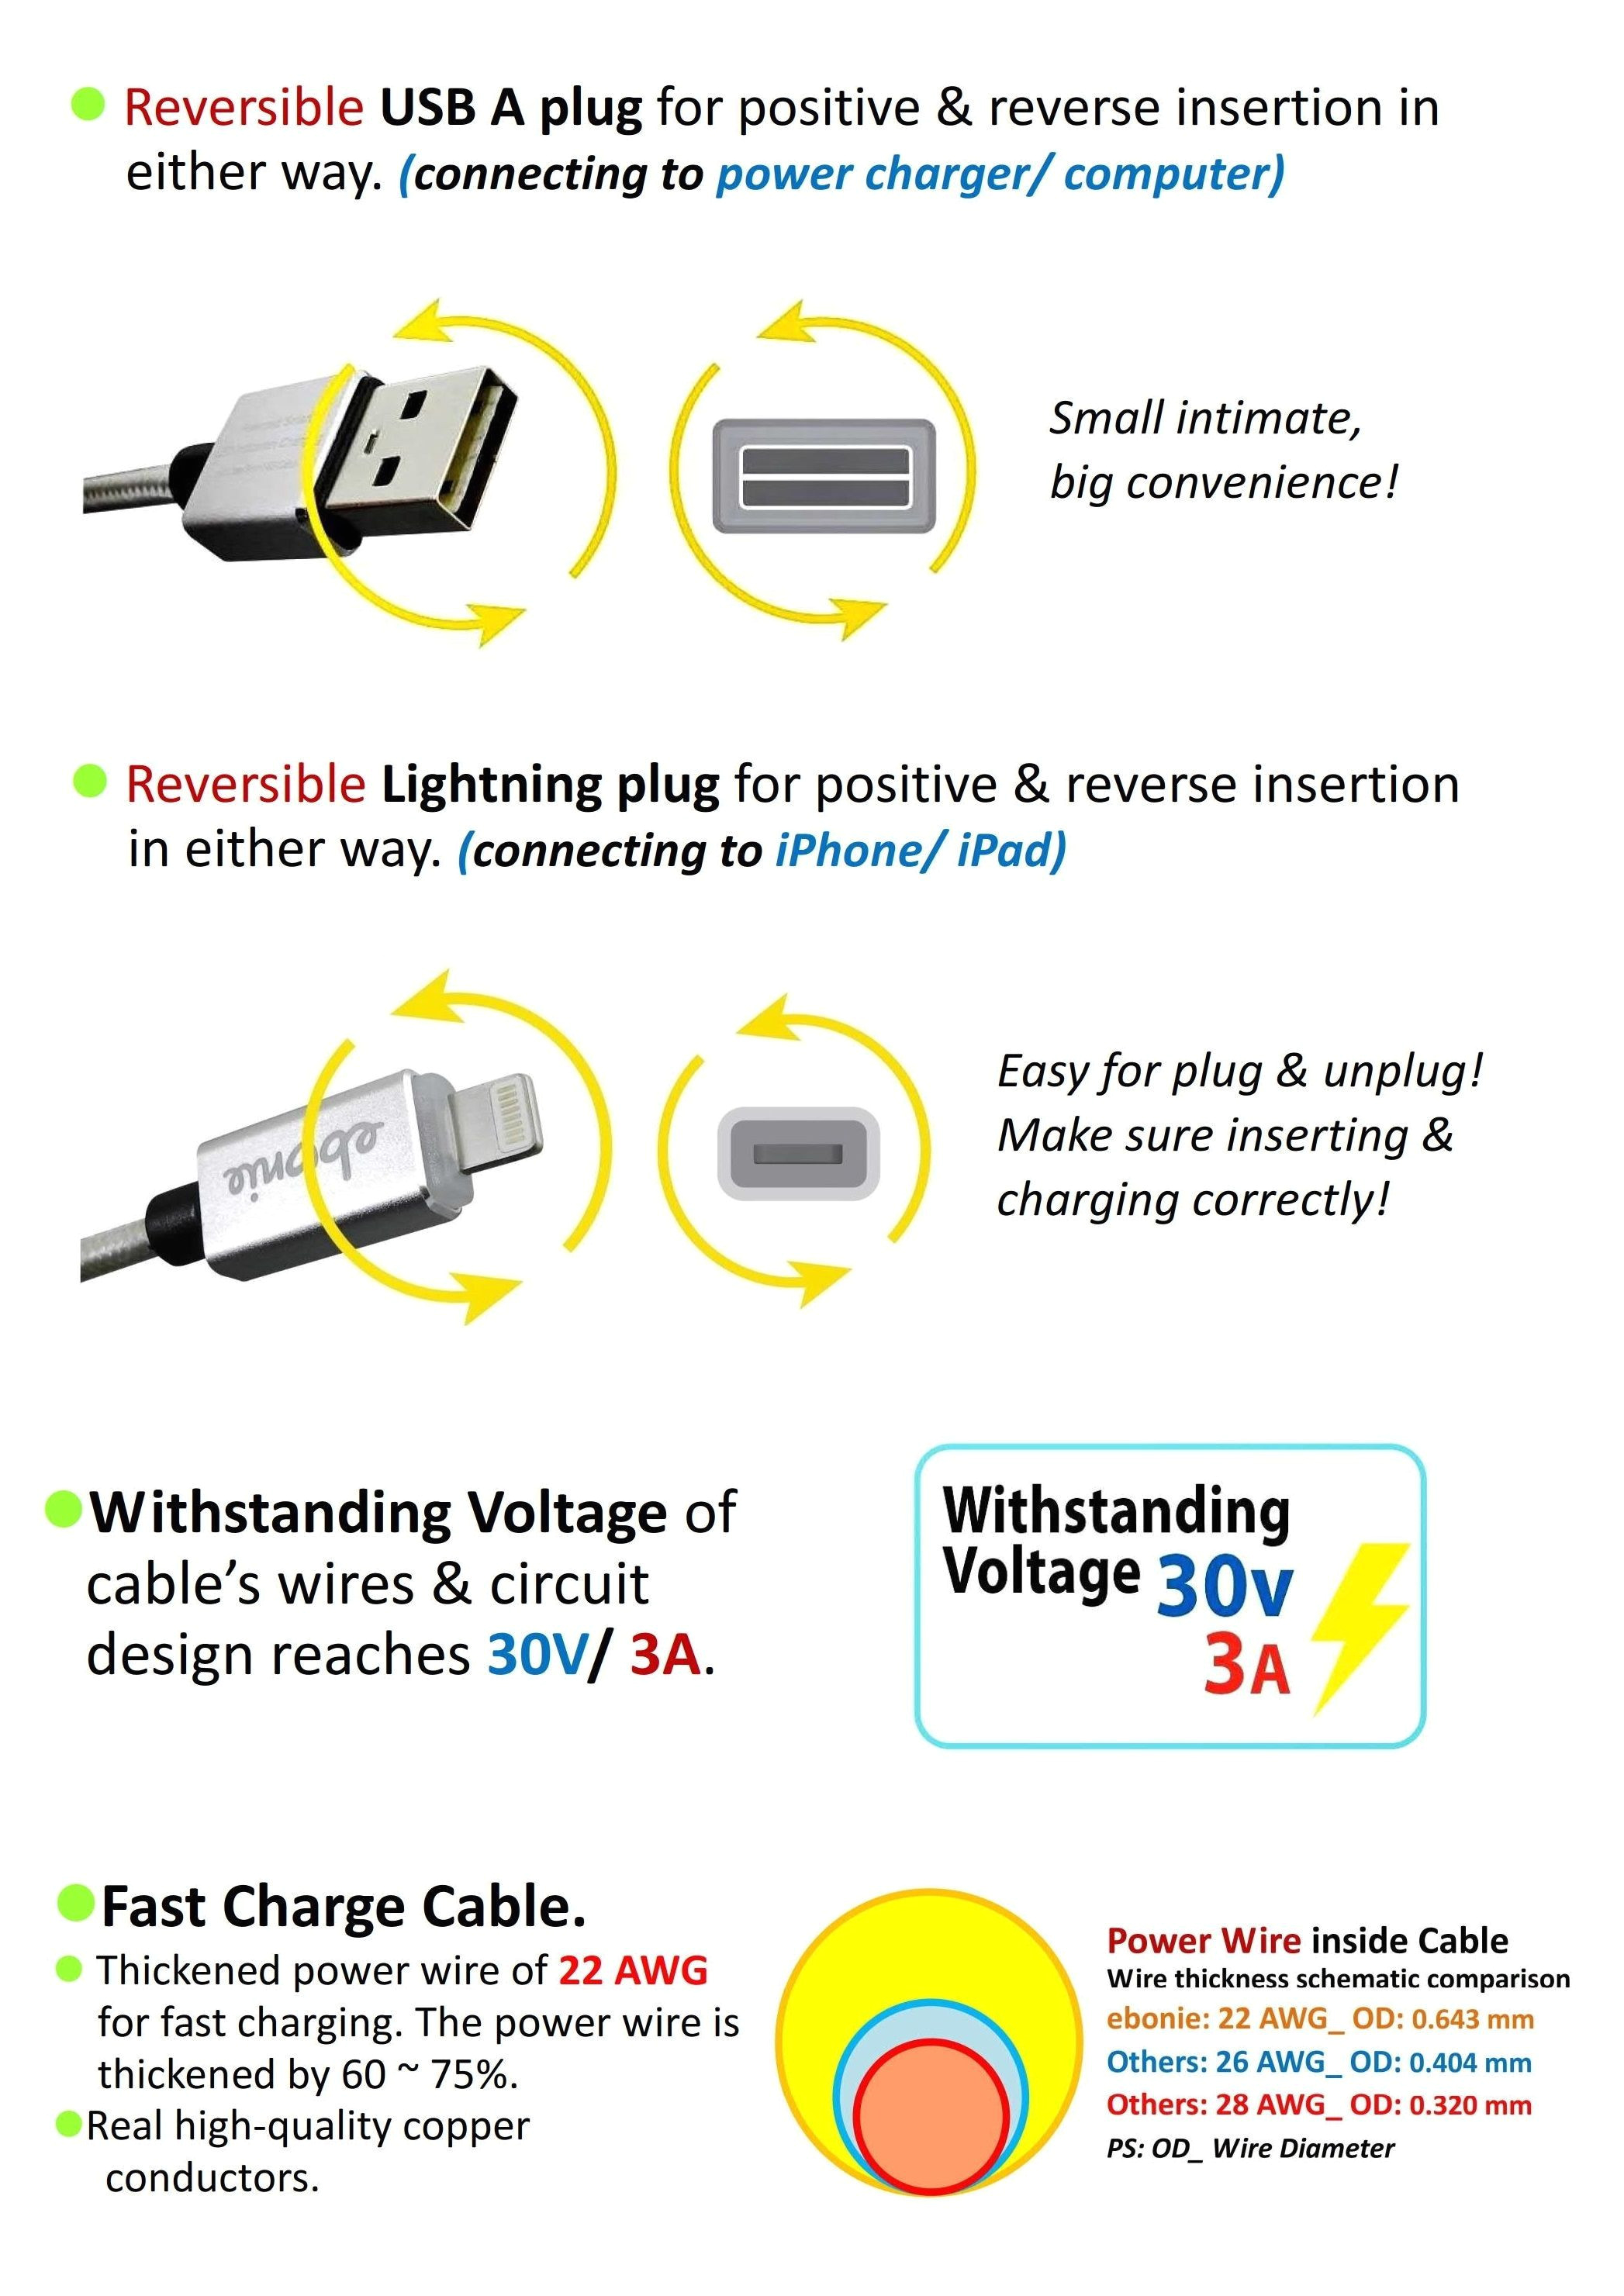 usb cable schematic diagram electrical wiring diagram software iphone usb charger wiring diagram iphone usb wiring diagram